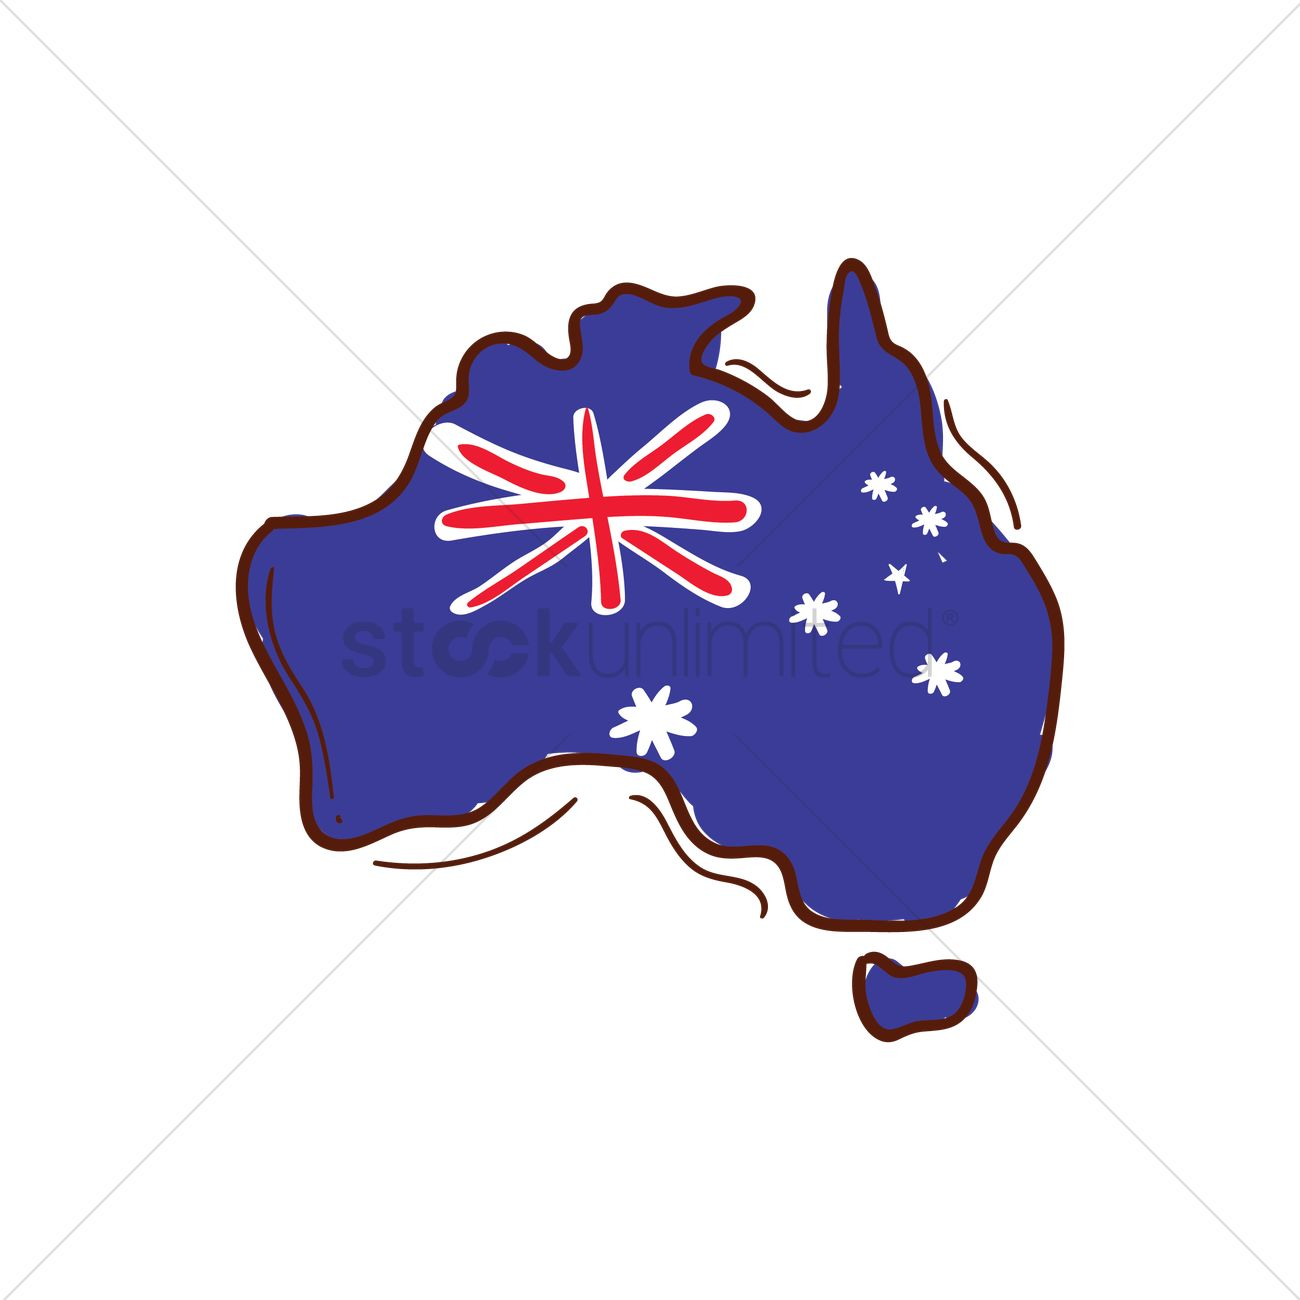 Australia Map Vector.Australia Map Vector Image 1949403 Stockunlimited